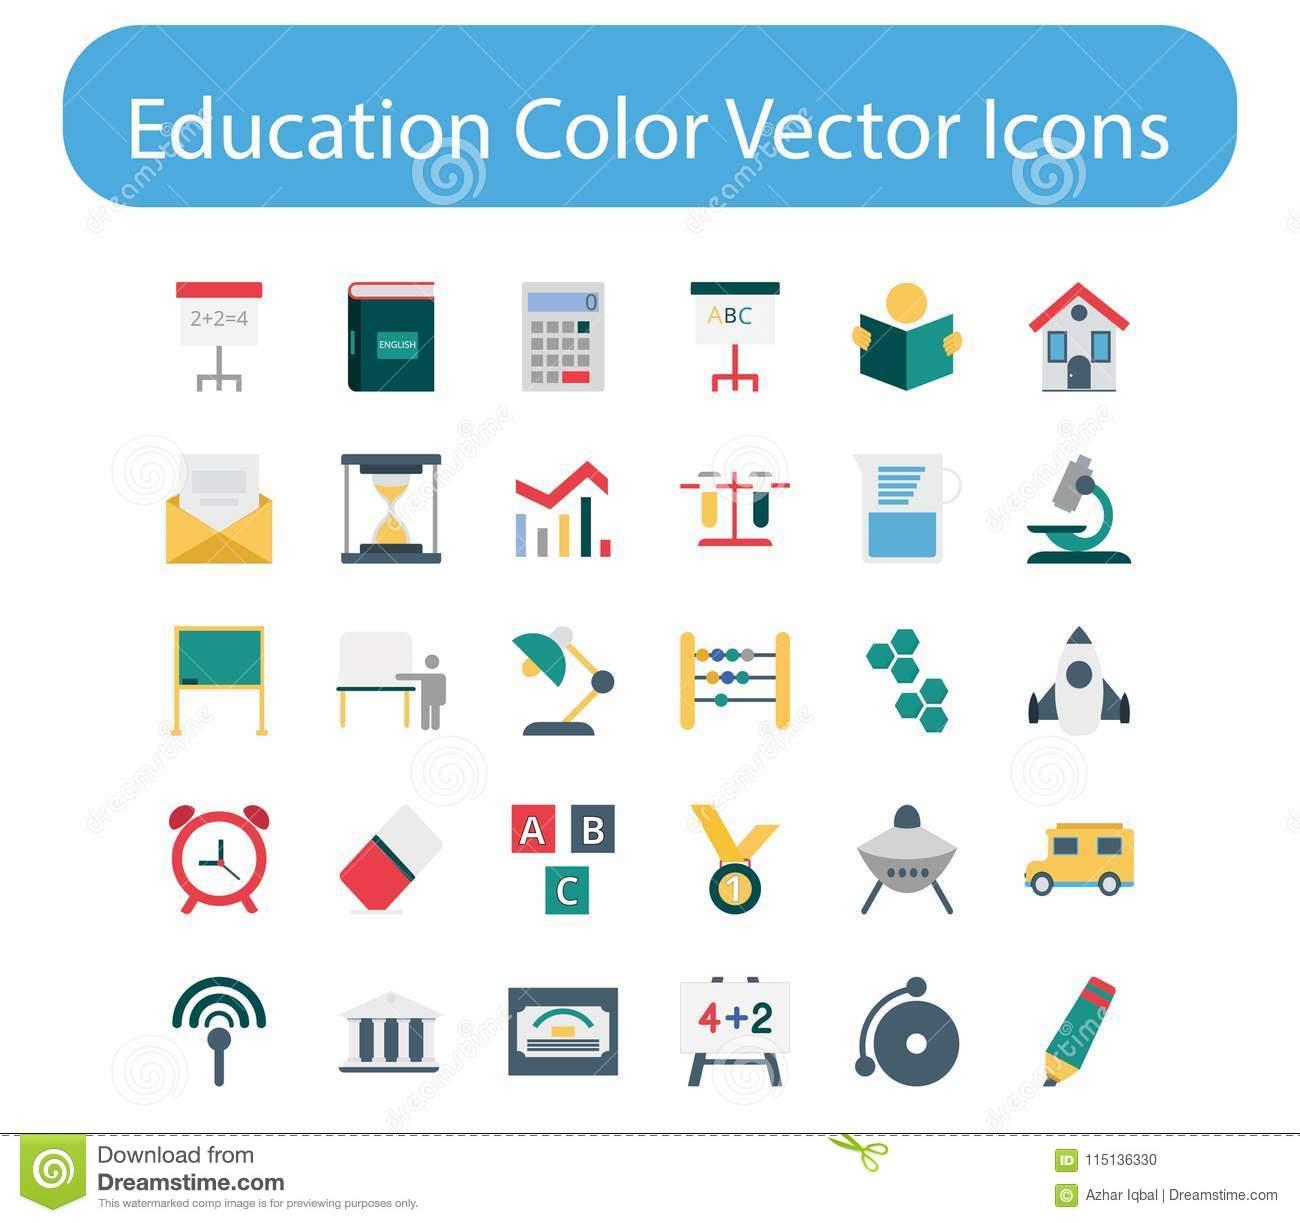 Education Color Vector Icons